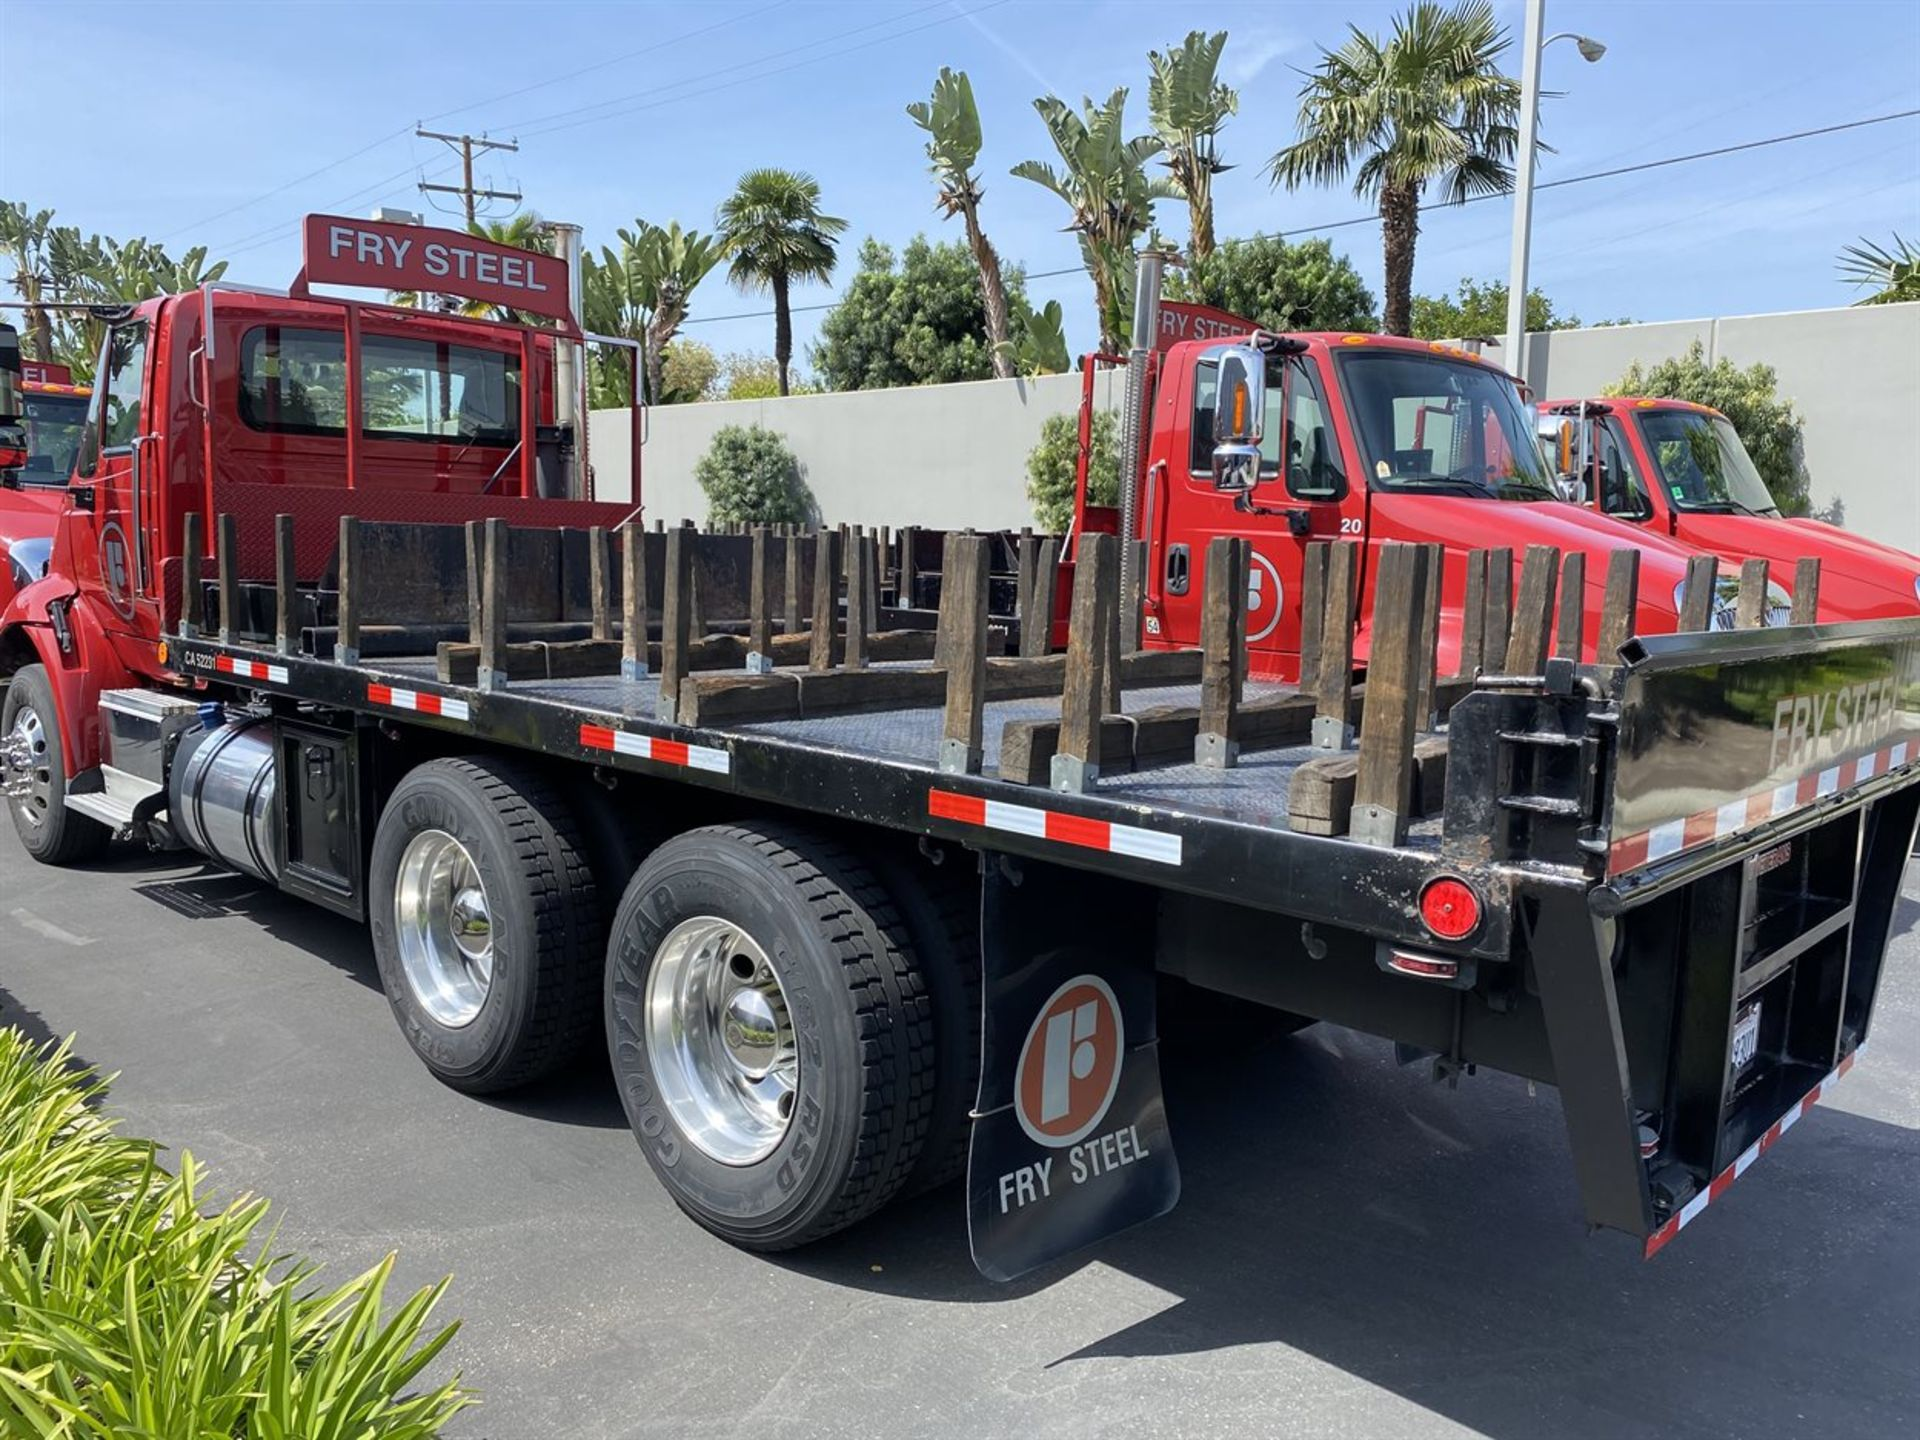 2016 INTERNATIONAL 18' Stake Bed Truck, VIN 3HTHXSNR9GN132471, 131,736 Miles at time of inspection - Image 3 of 17